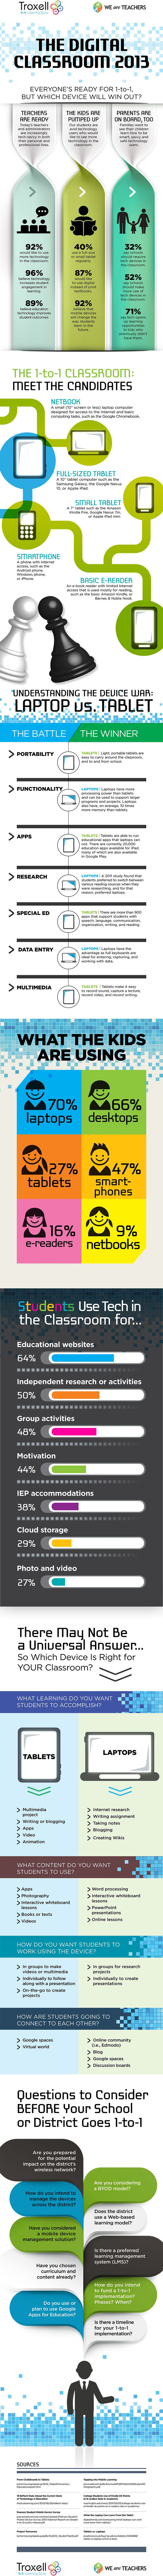 Troxell Digital Classroom Infographic